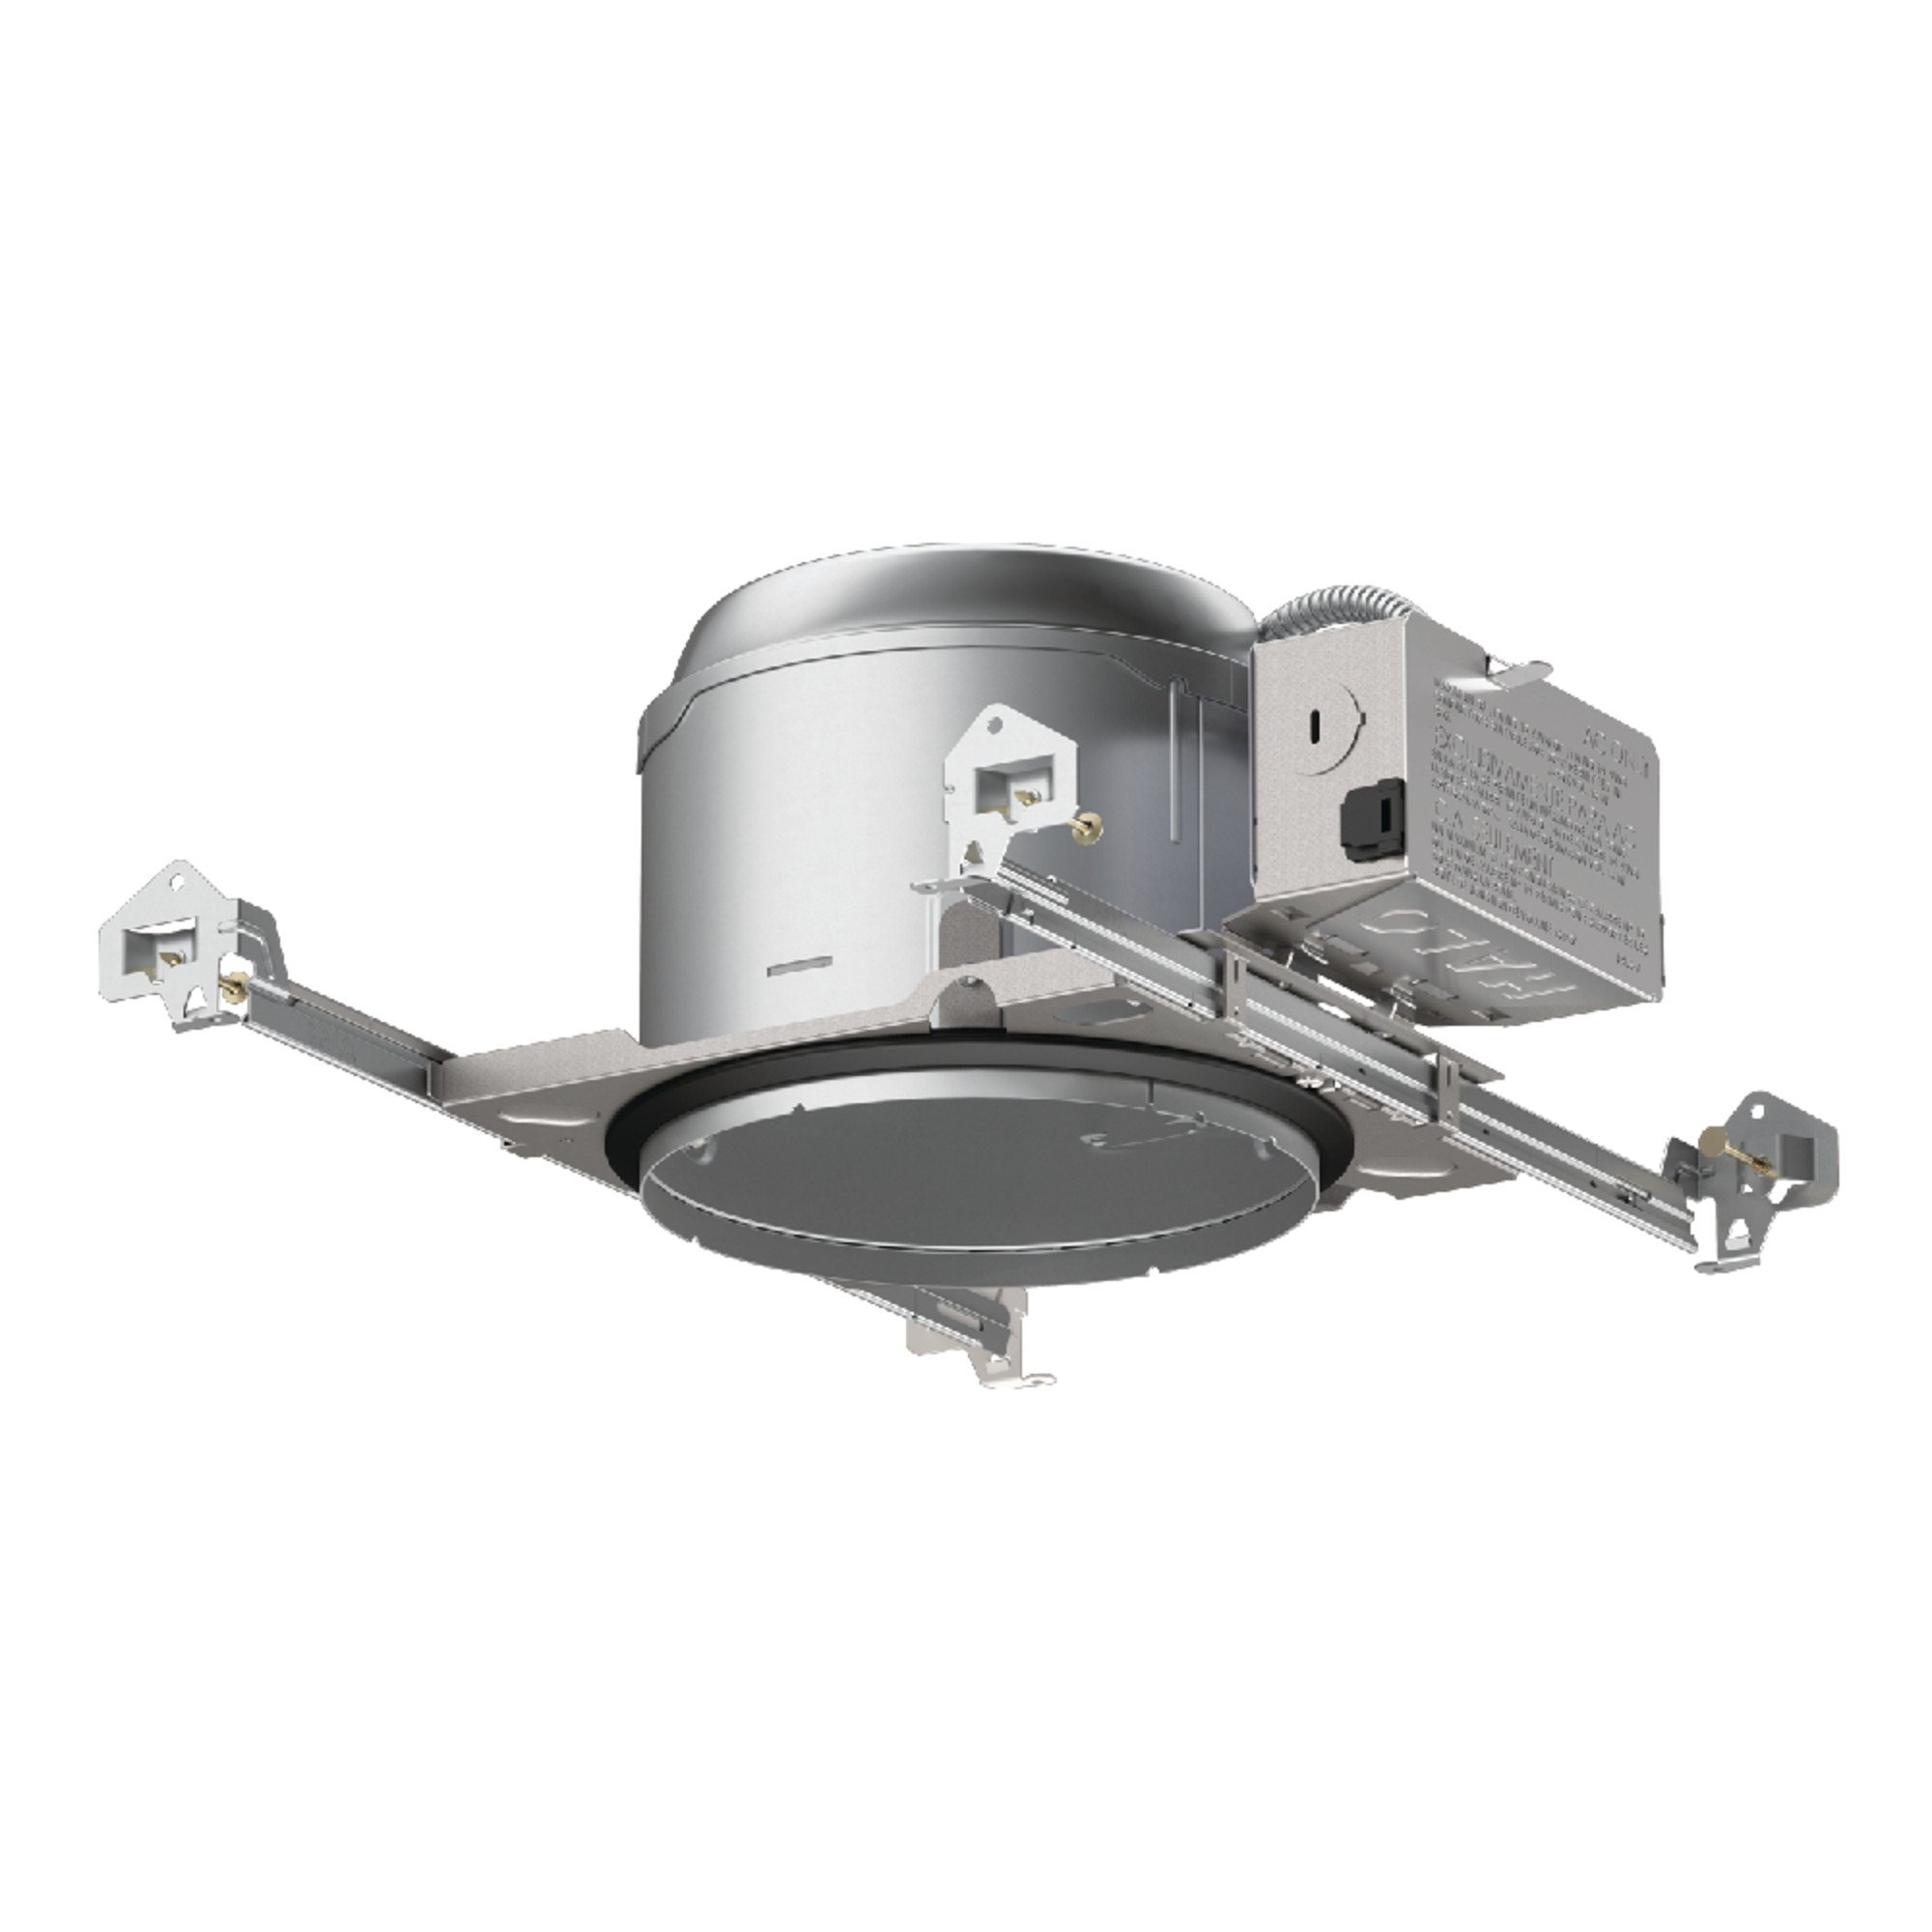 Halo E27ICAT E26 Series Recessed Lighting Shallow New Construction Insulation Contact Rated Air-Tite Housing, 6 In, Aluminum